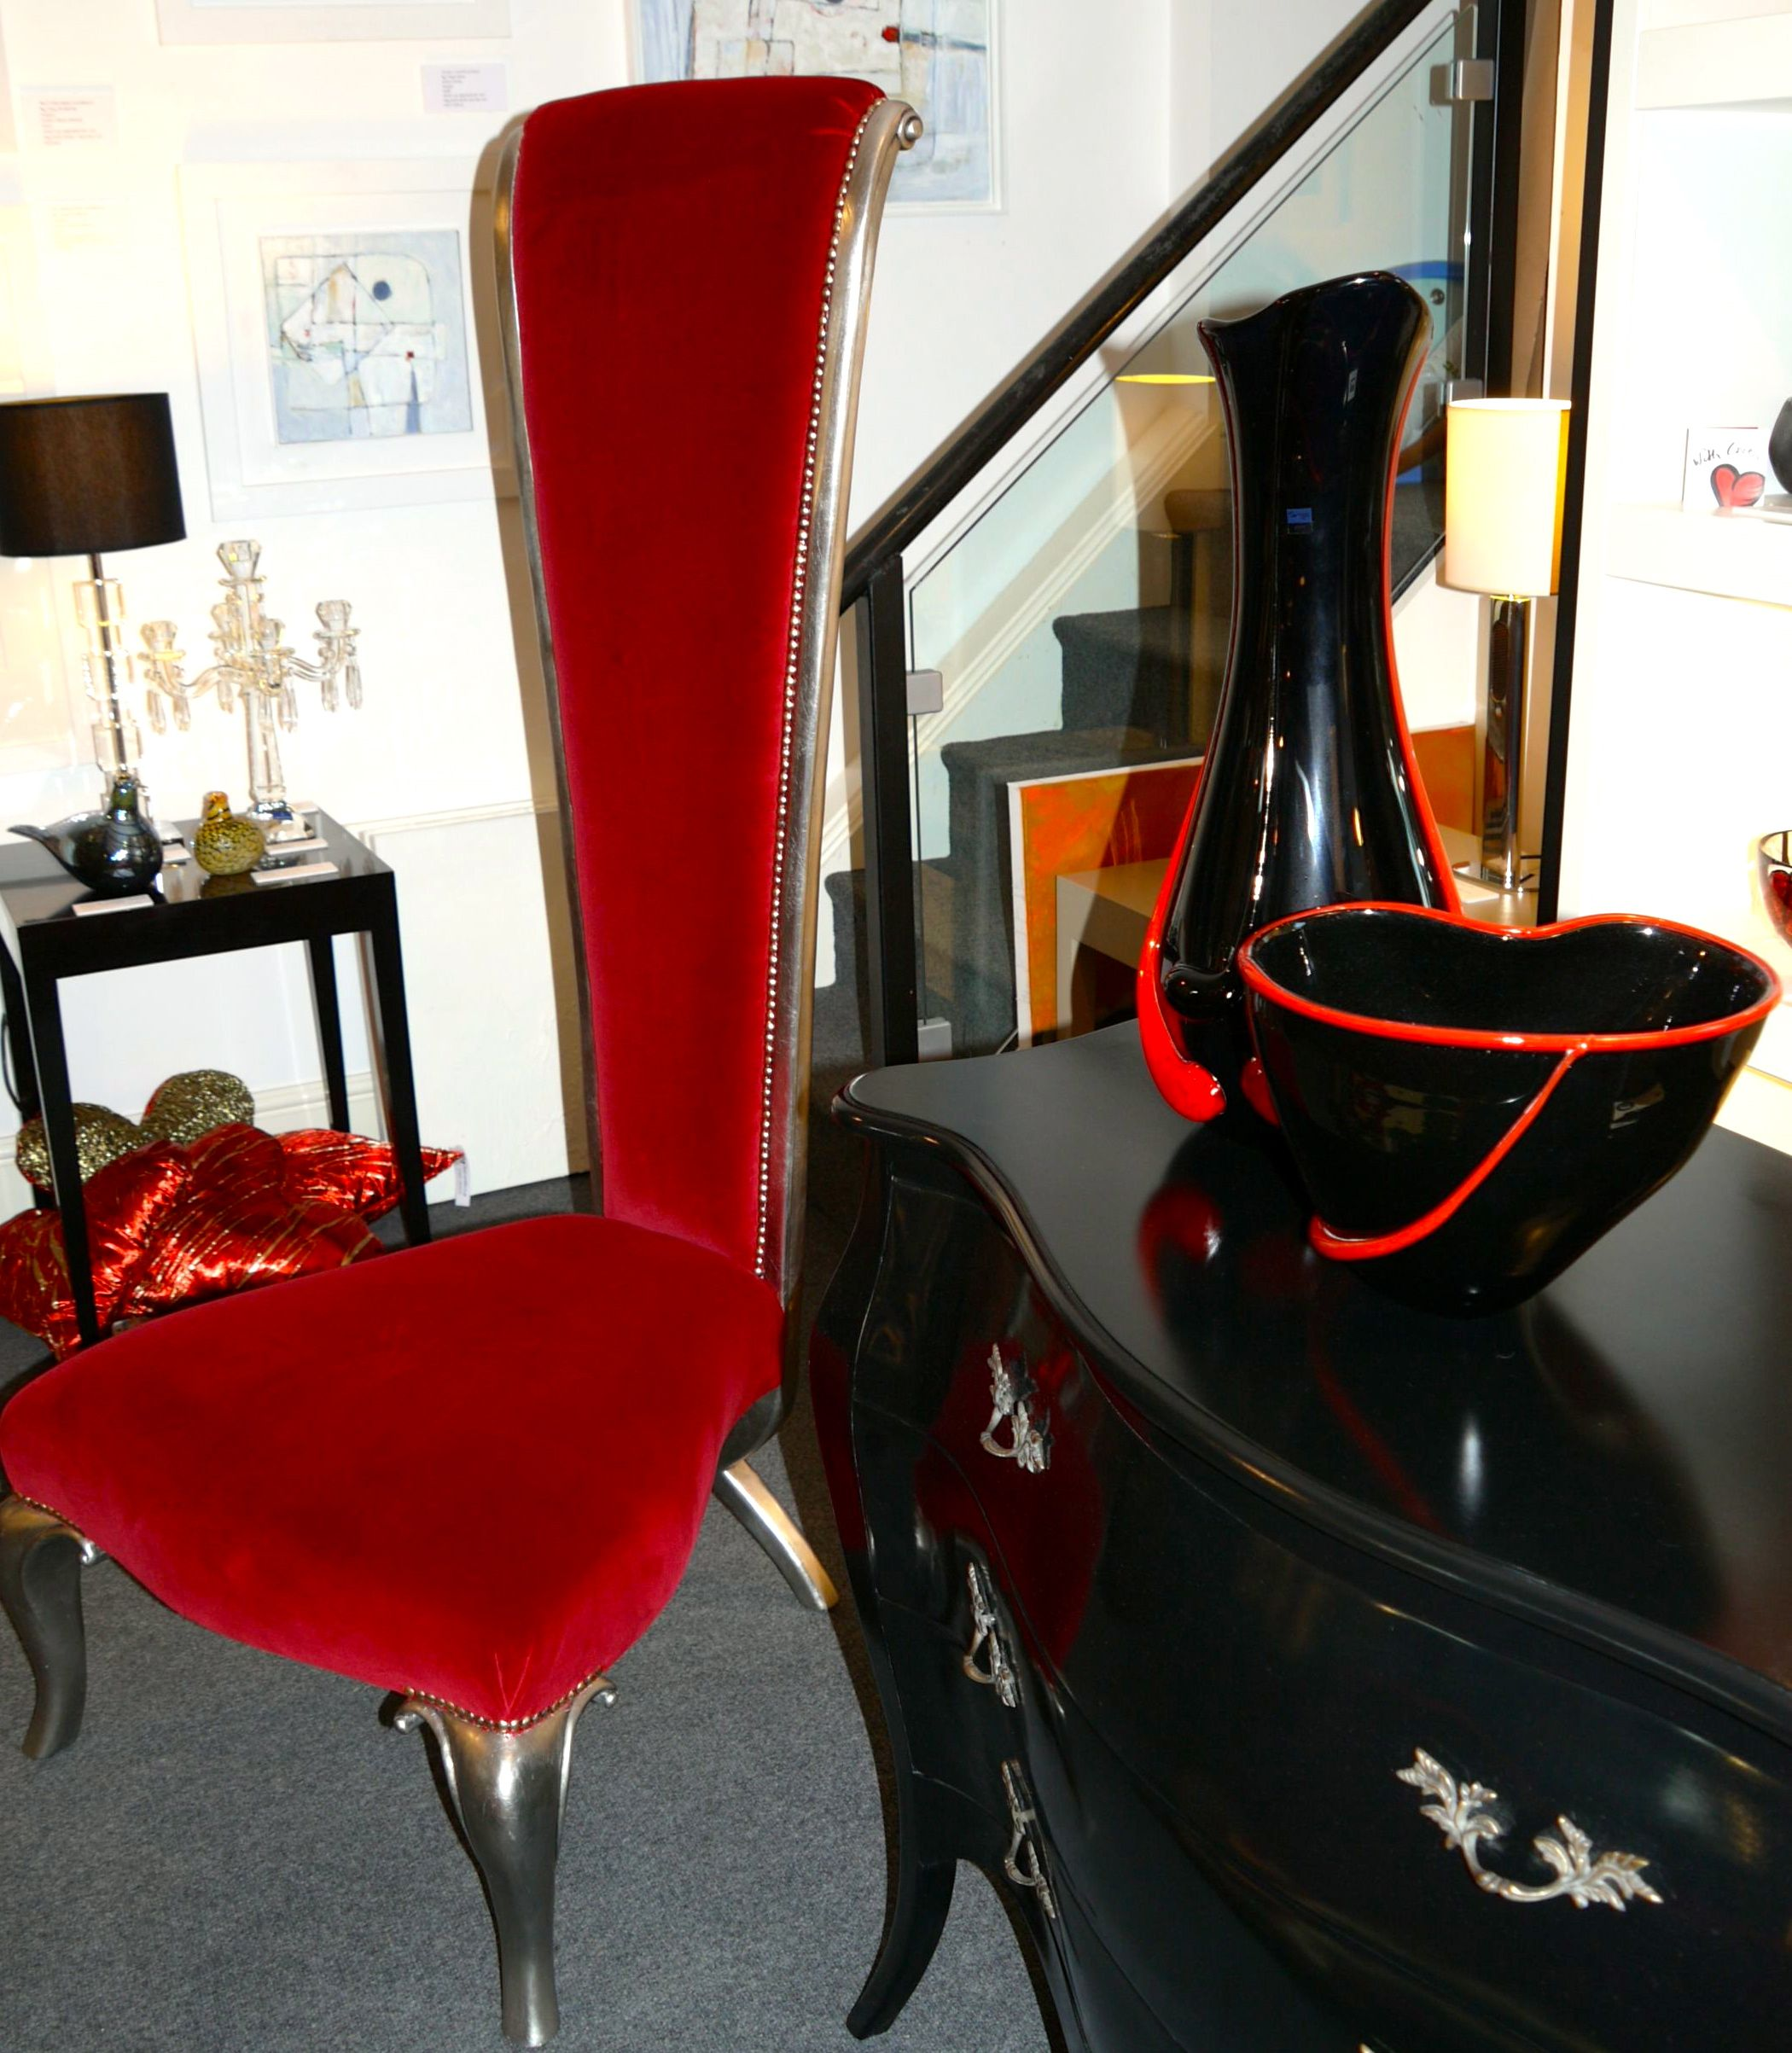 Union showroom in grantham scarlet orchid black tall vase and union showroom in grantham scarlet orchid black tall vase and bowl svaja reviewsmspy